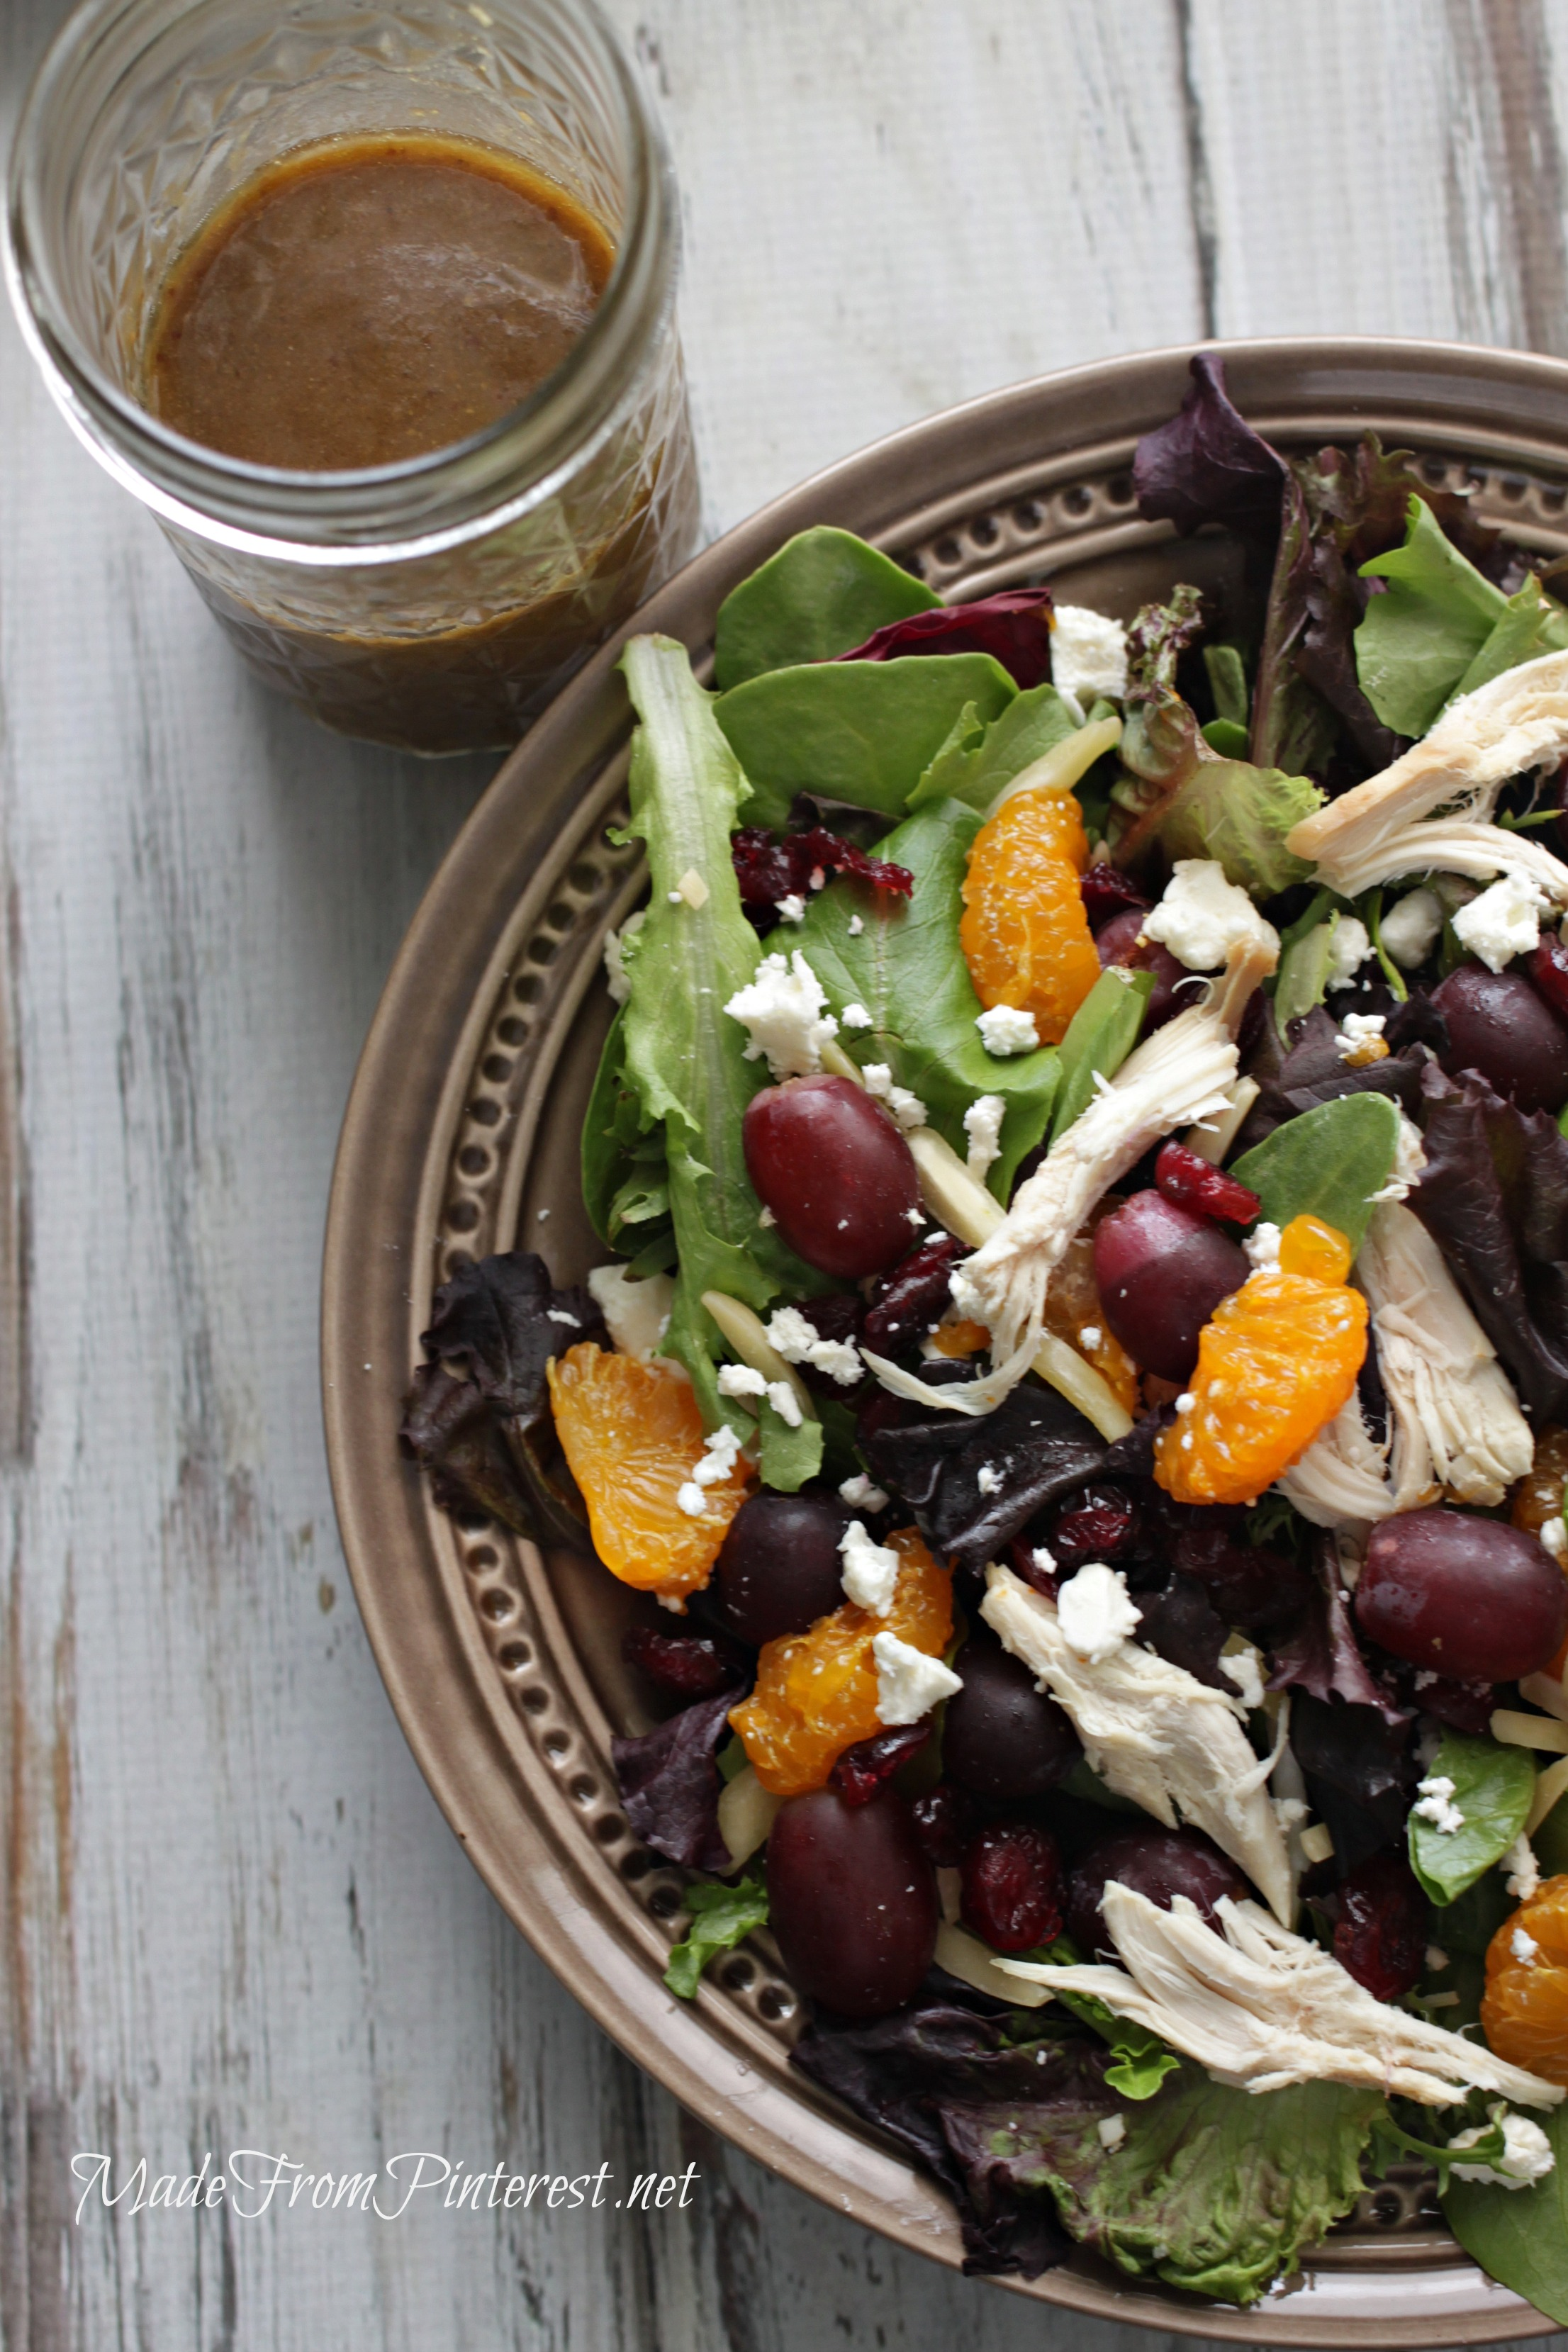 Mediterranean Chicken Salad with Creamy Balsamic Vinaigrette. Perfect blend of flavors and colors!